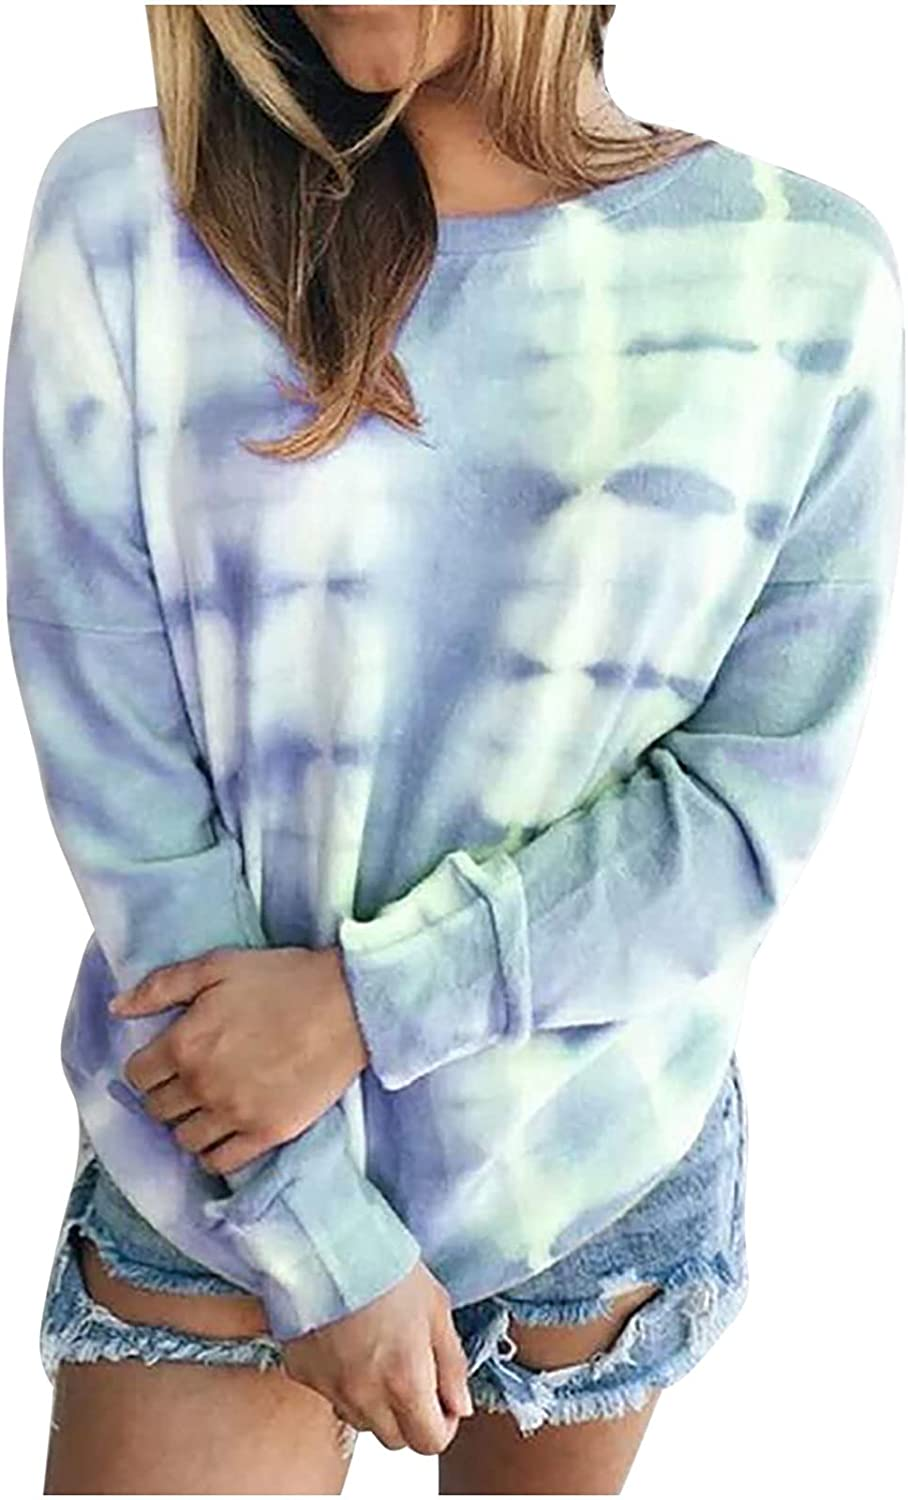 Crew Neck Sweatshirts for Women Tie Dye Pullovers Tops Baggy T Shirt for Fall Casual Long Sleeve Blouse